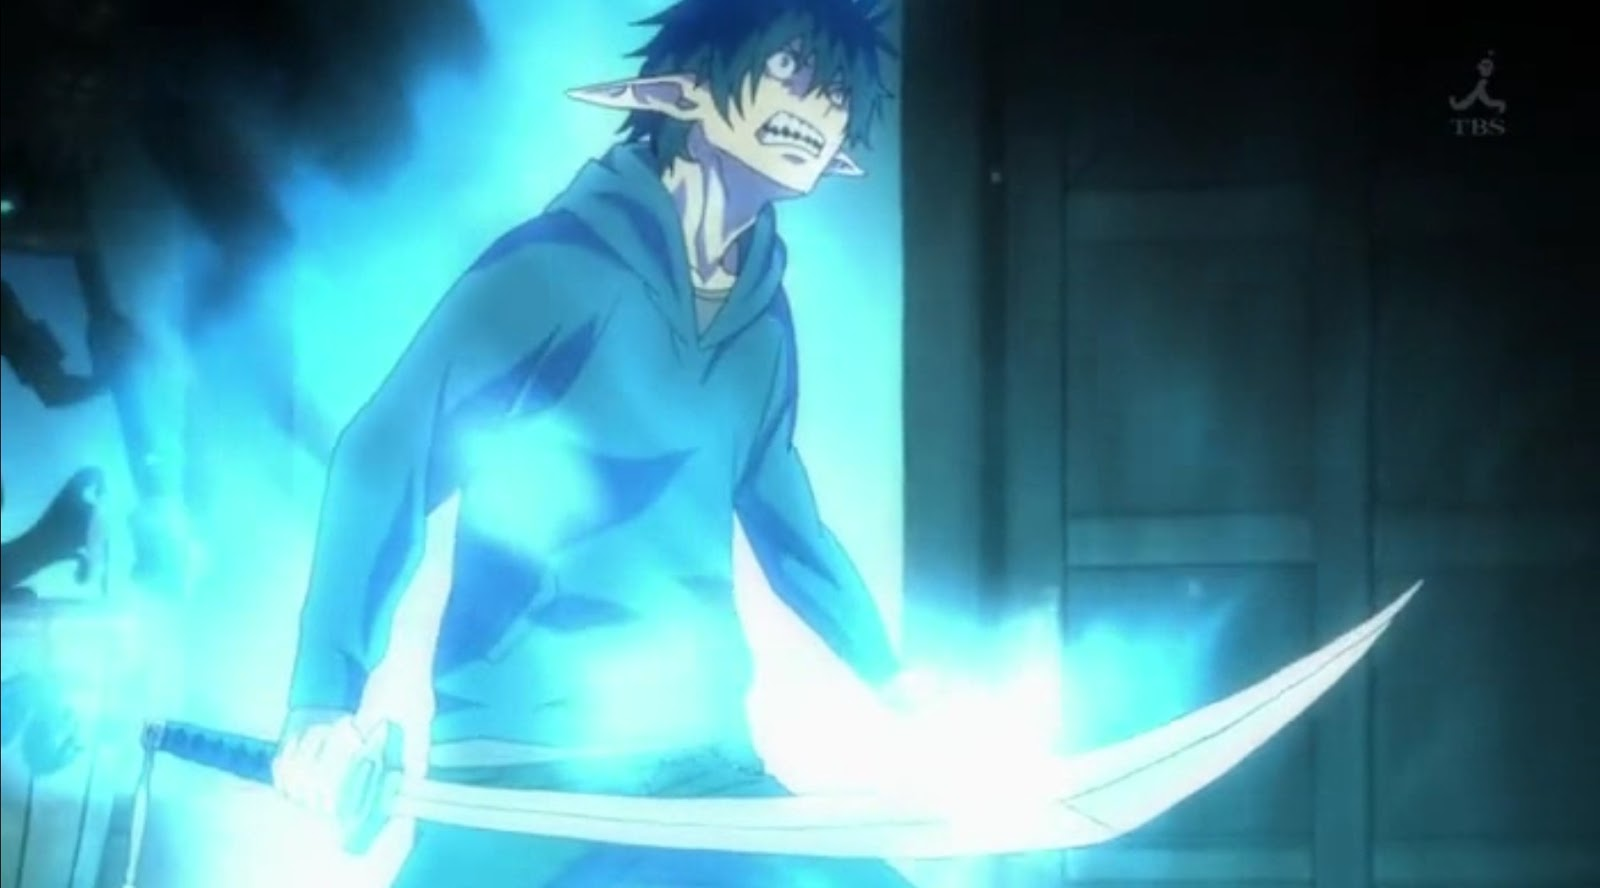 Assistir Ao No Exorcist, Ao No Exorcist Episódio 02 HD, Ao No Exorcist Episódio 02, Ao No Exorcist - Episódio 02 Legendado, Ao No Exorcist Episódio 02,